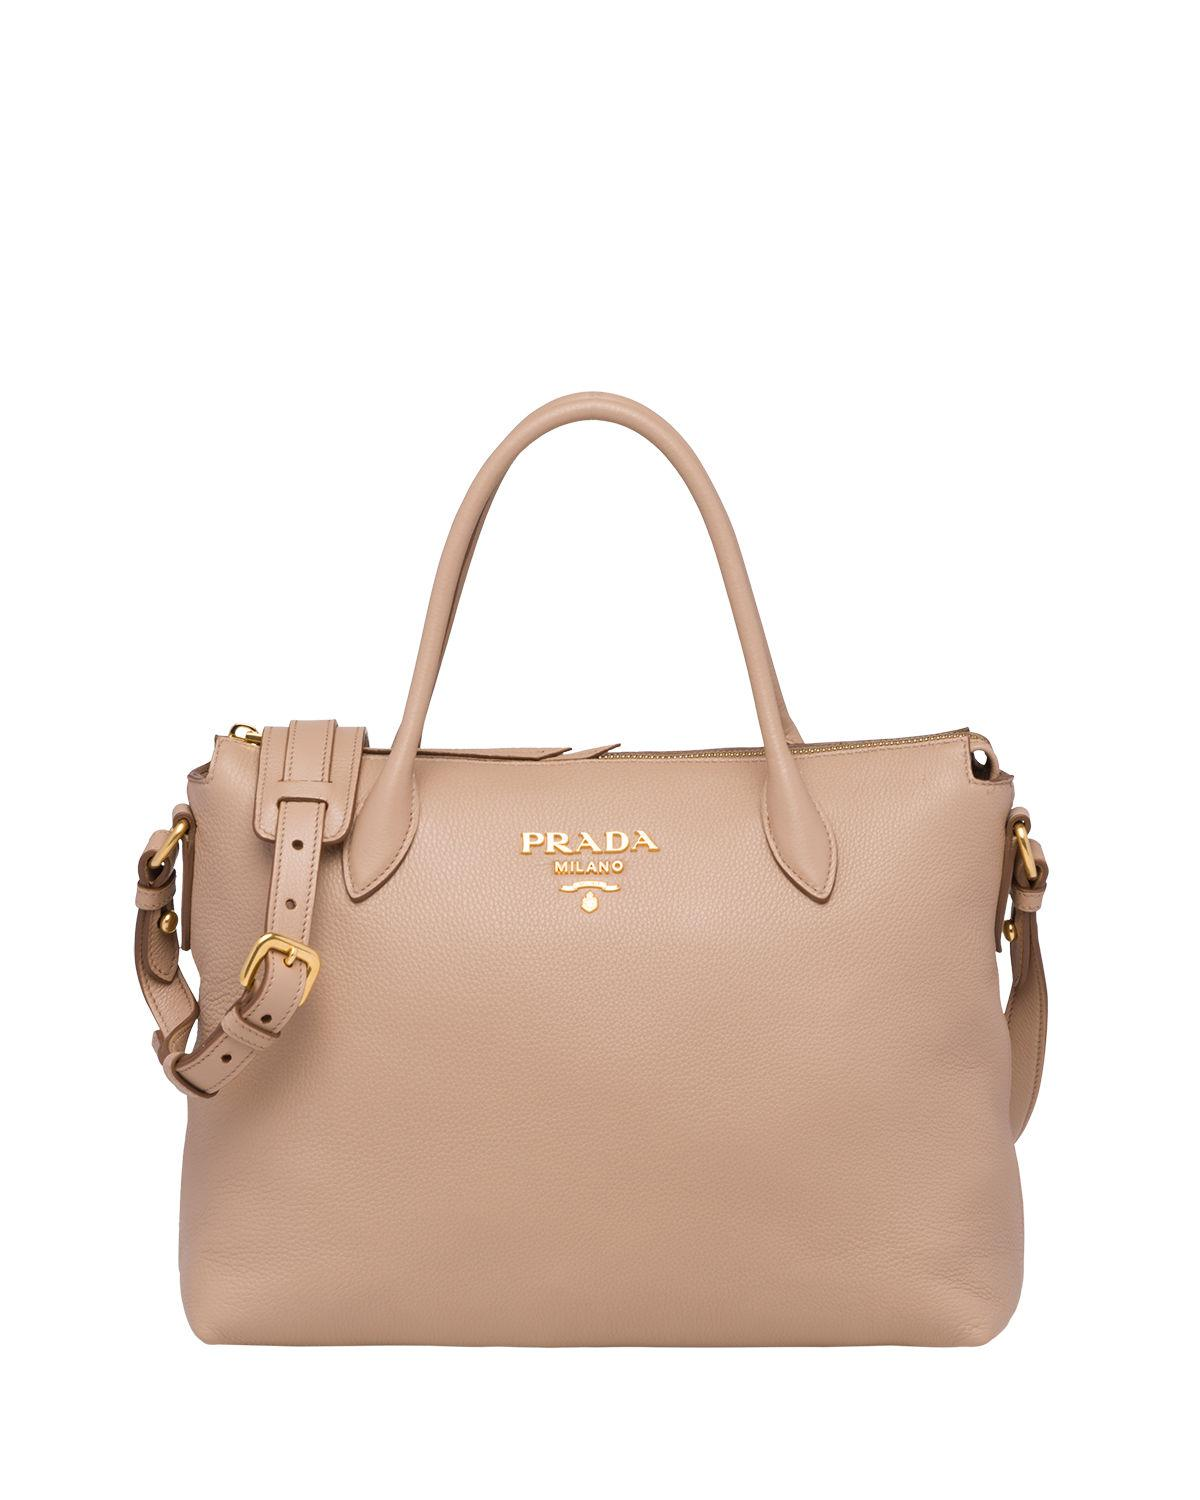 c57abcc9adfb Prada. Women's Daino Medium Leather Tote Bag